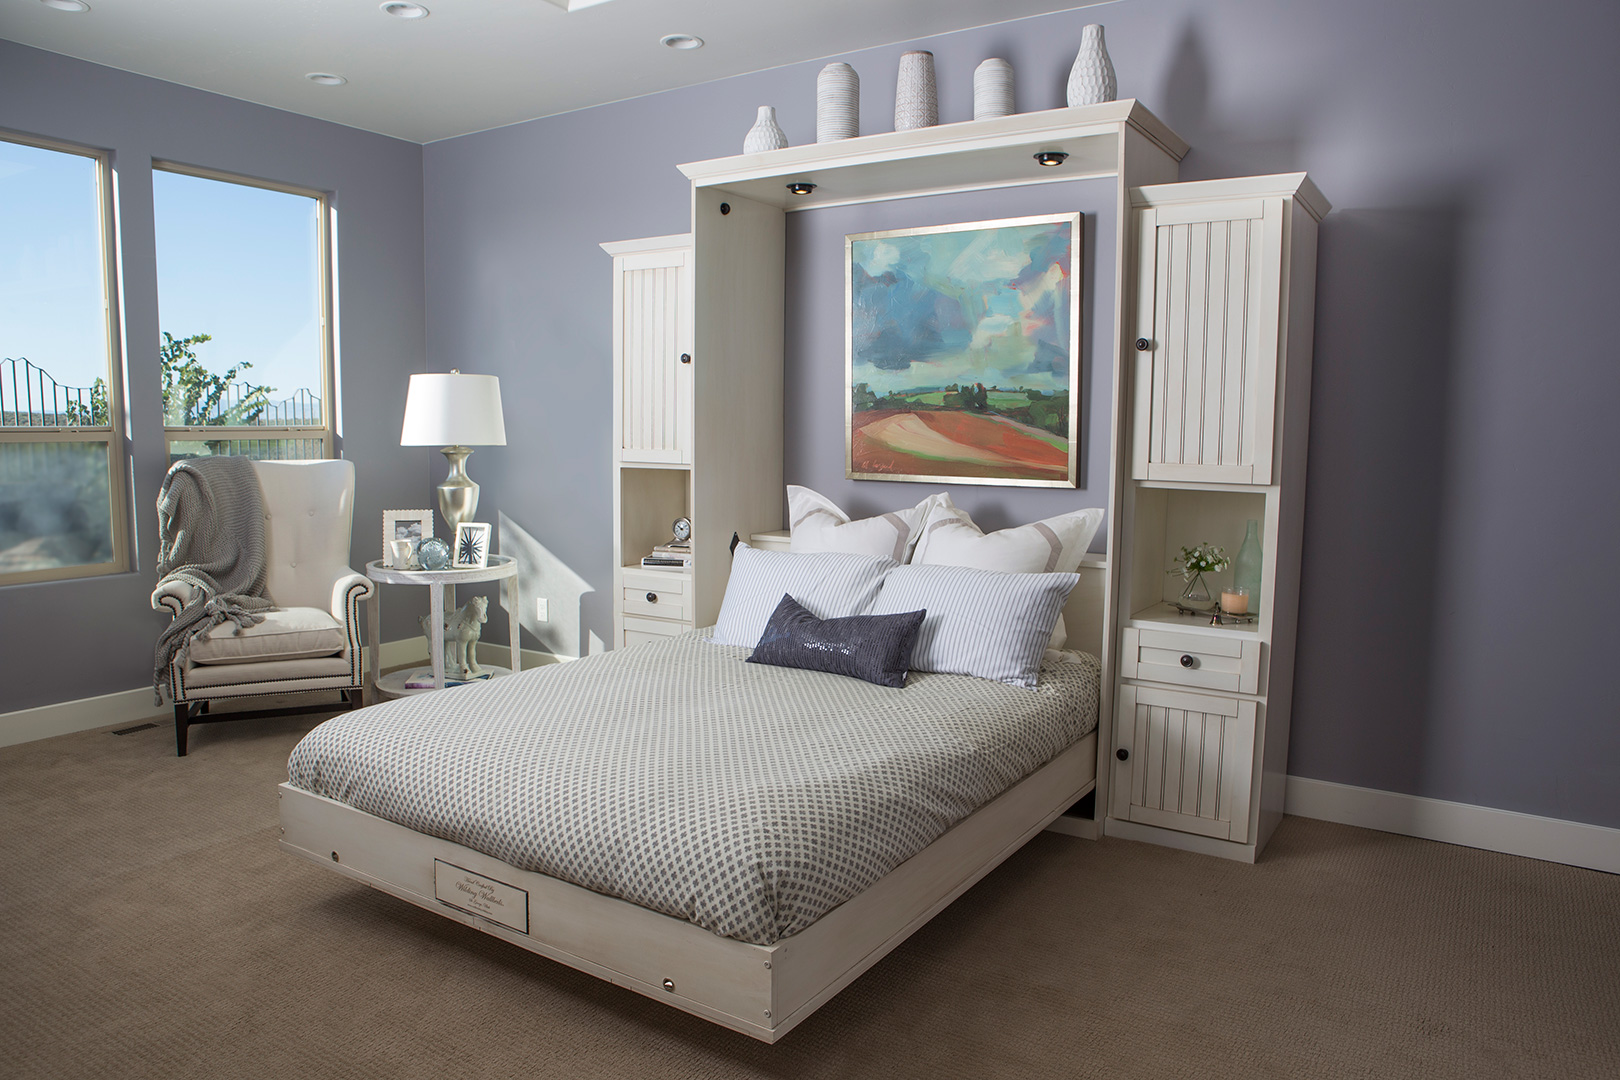 hampton wall bed style | wilding wallbeds